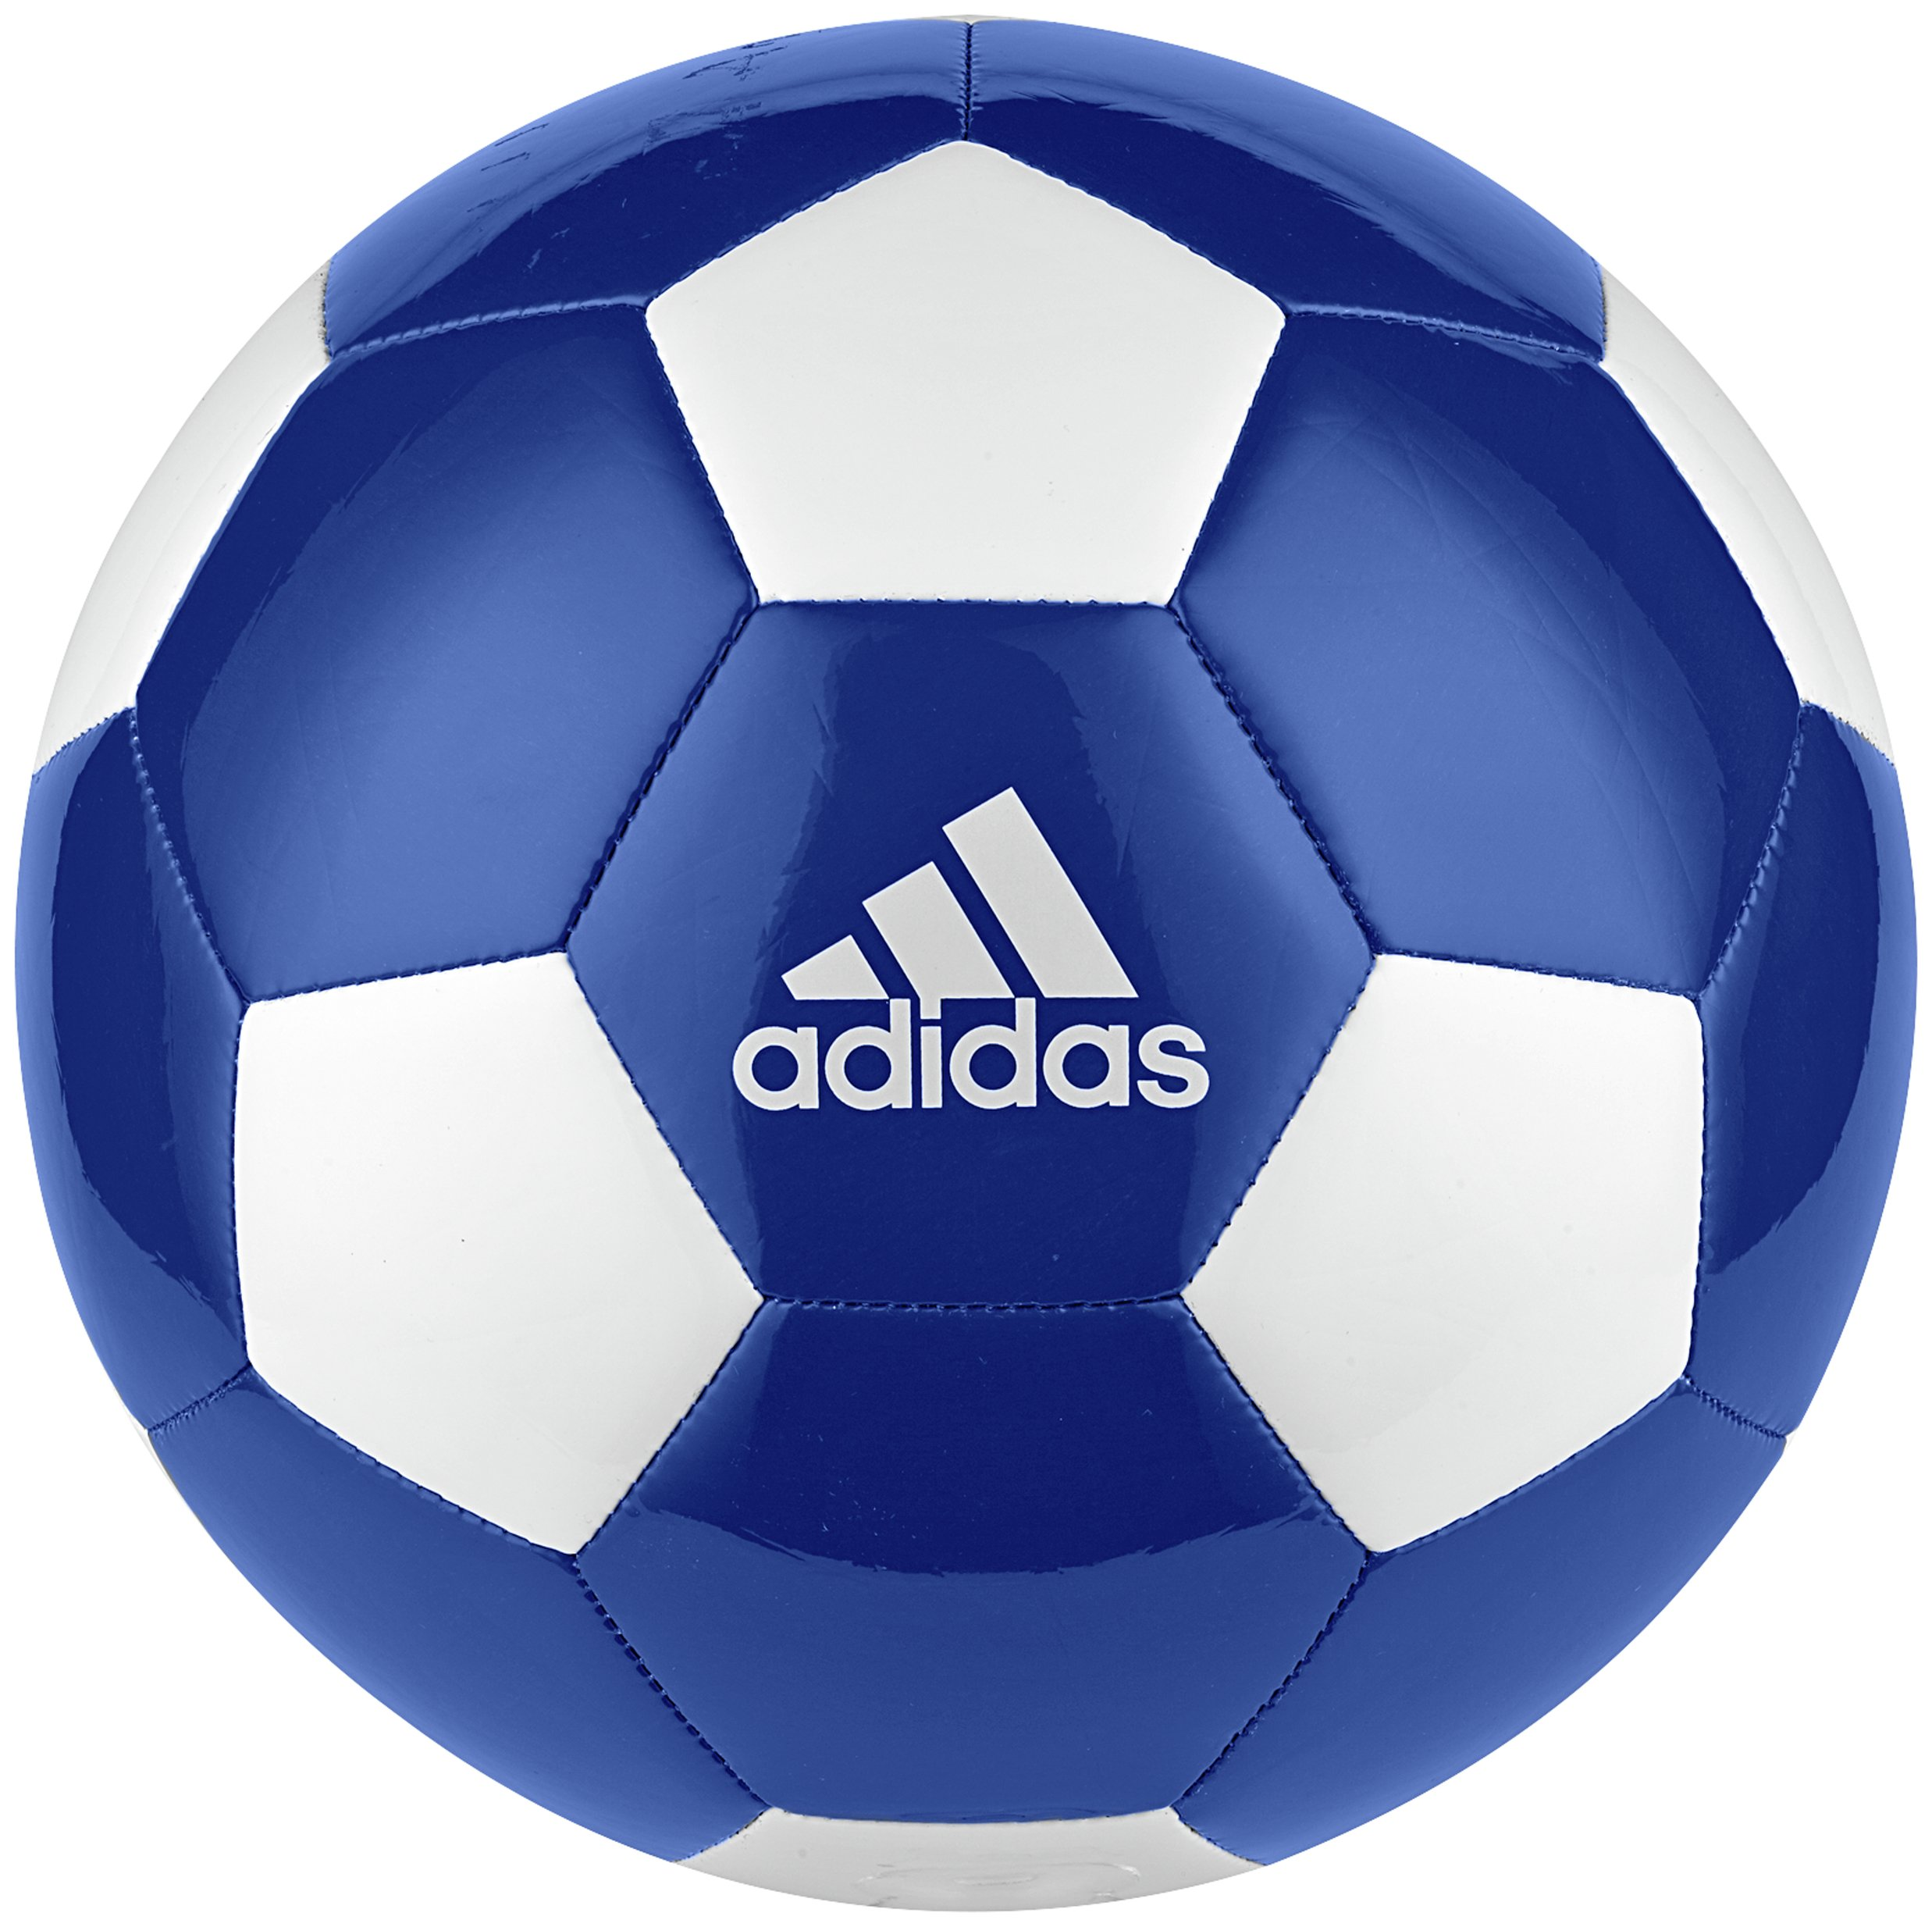 Image of Adidas EPP II Glider Football